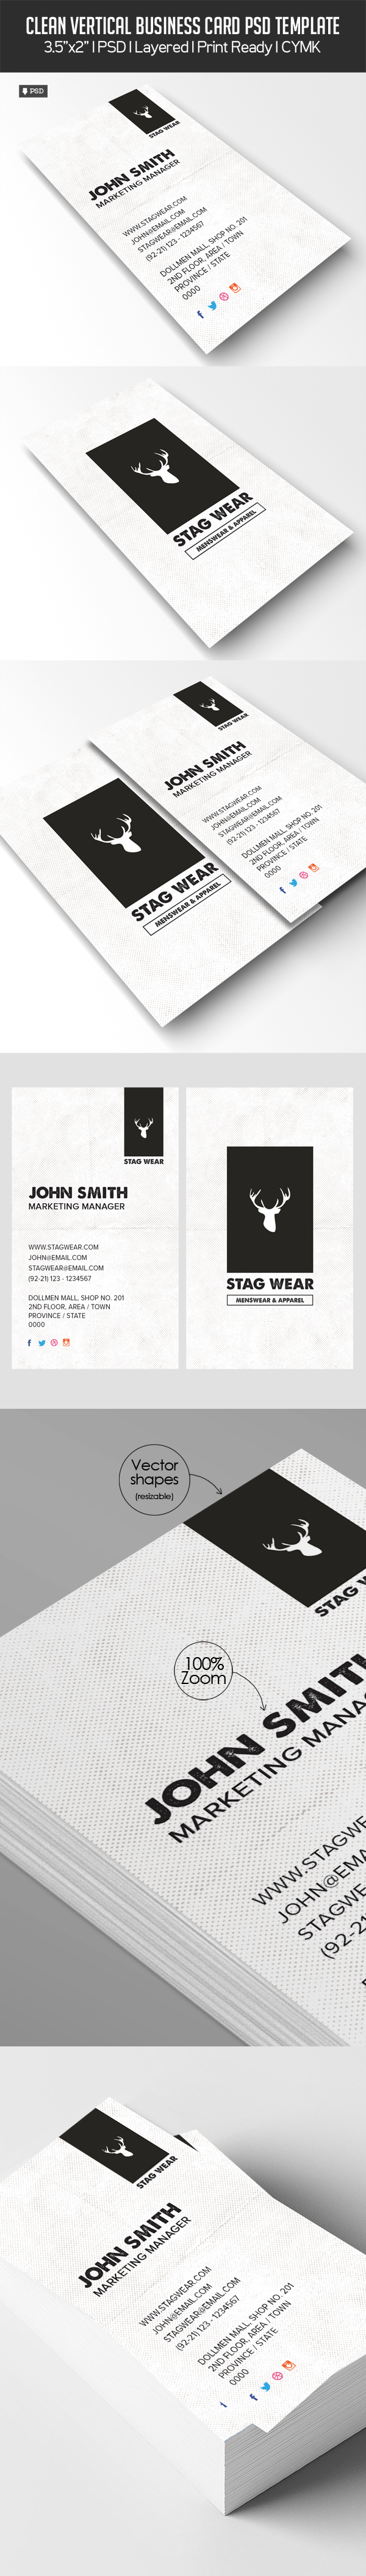 Freebie vertical business card psd template freebies graphic freebie vertical business card psd template flashek Image collections